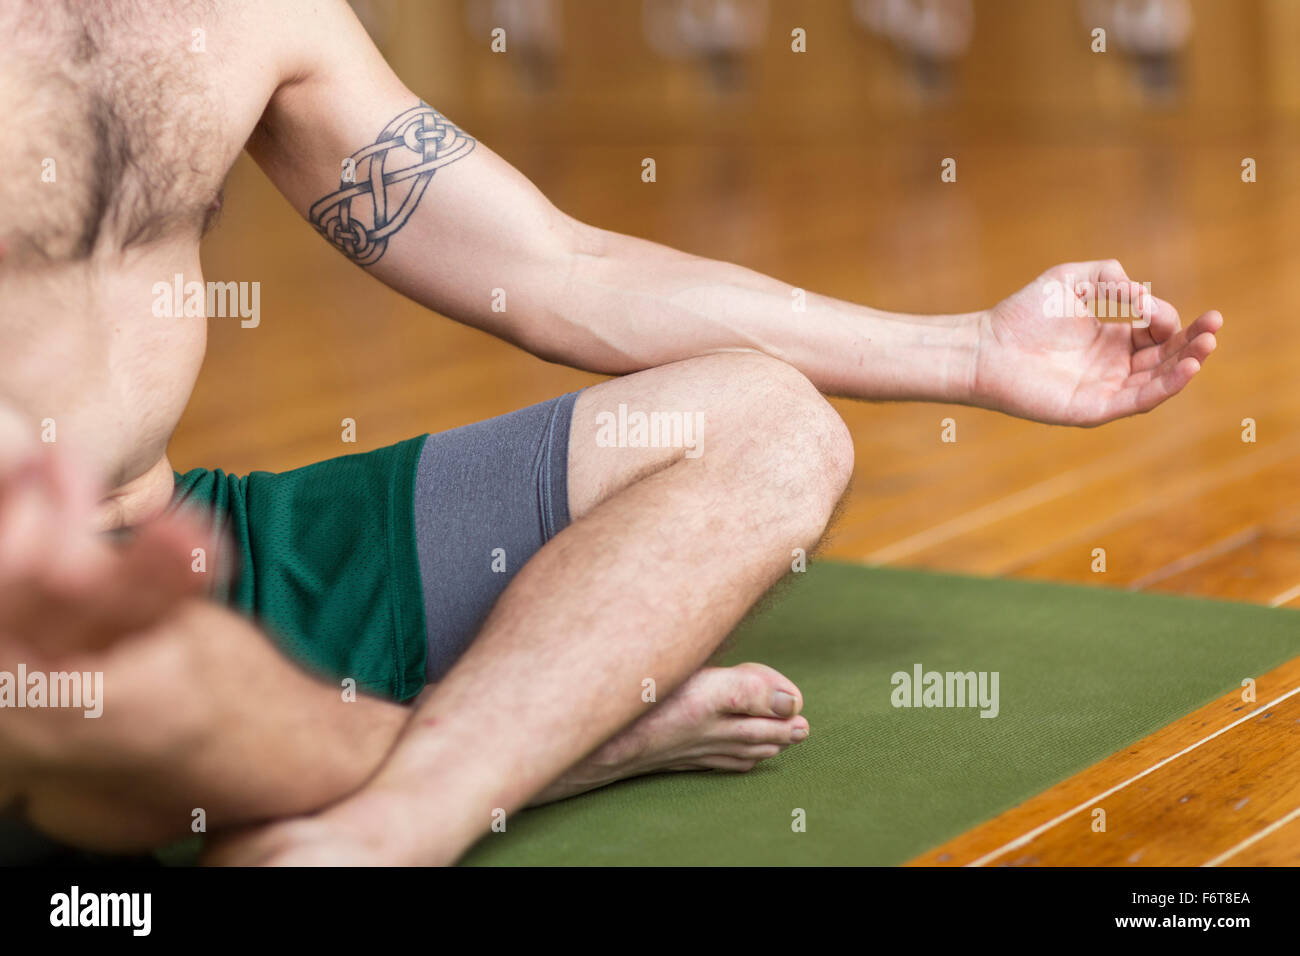 Man practicing yoga in studio - Stock Image